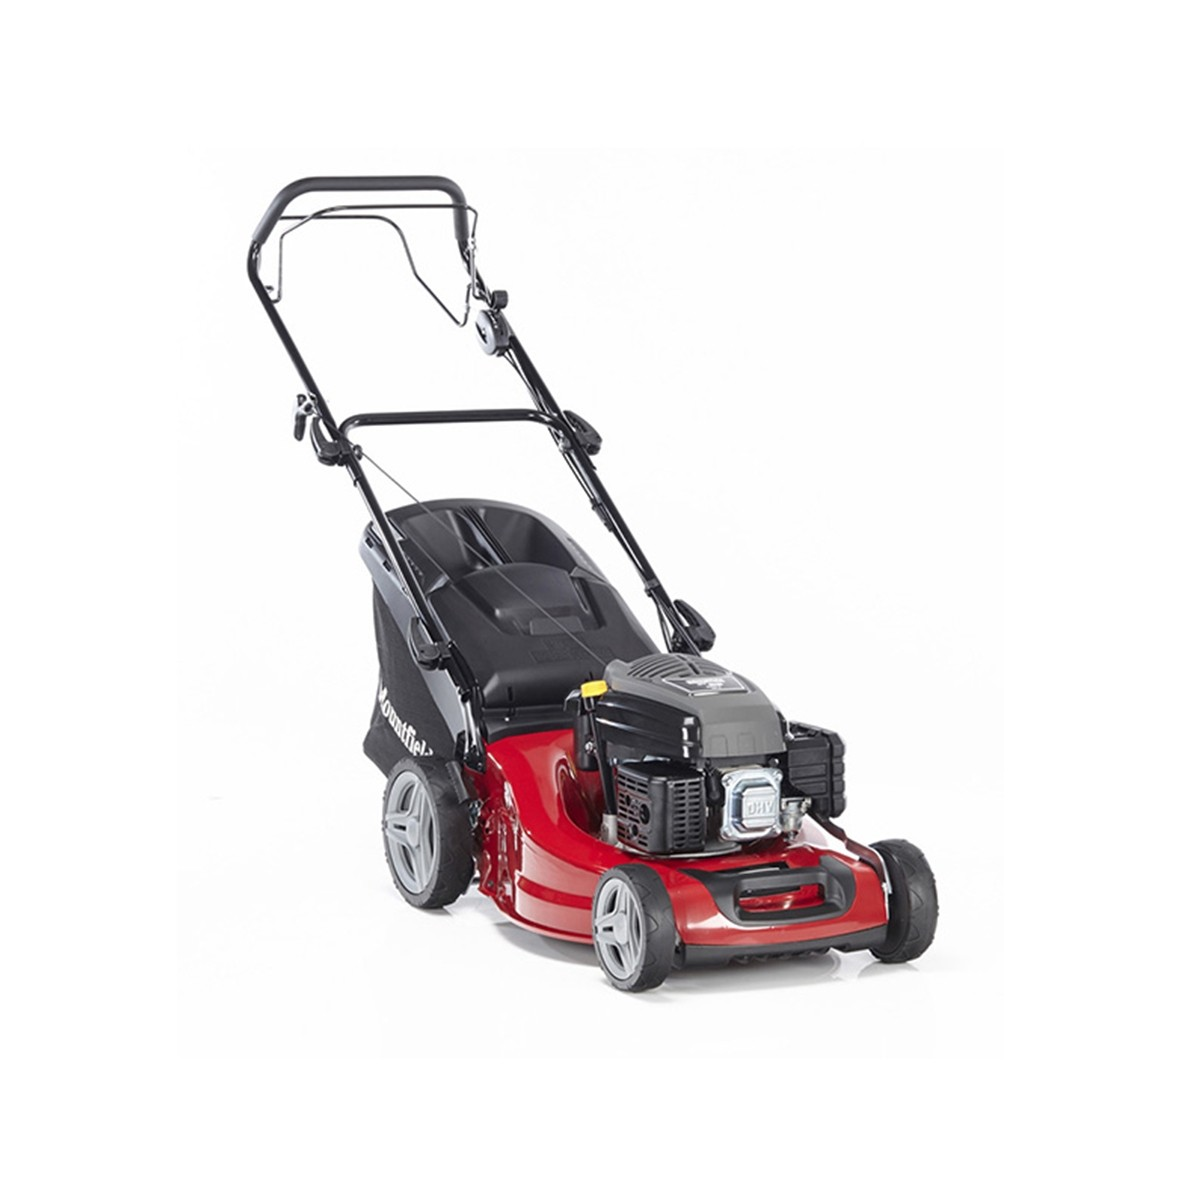 Mountfield S481 HP 48cm lawn mower